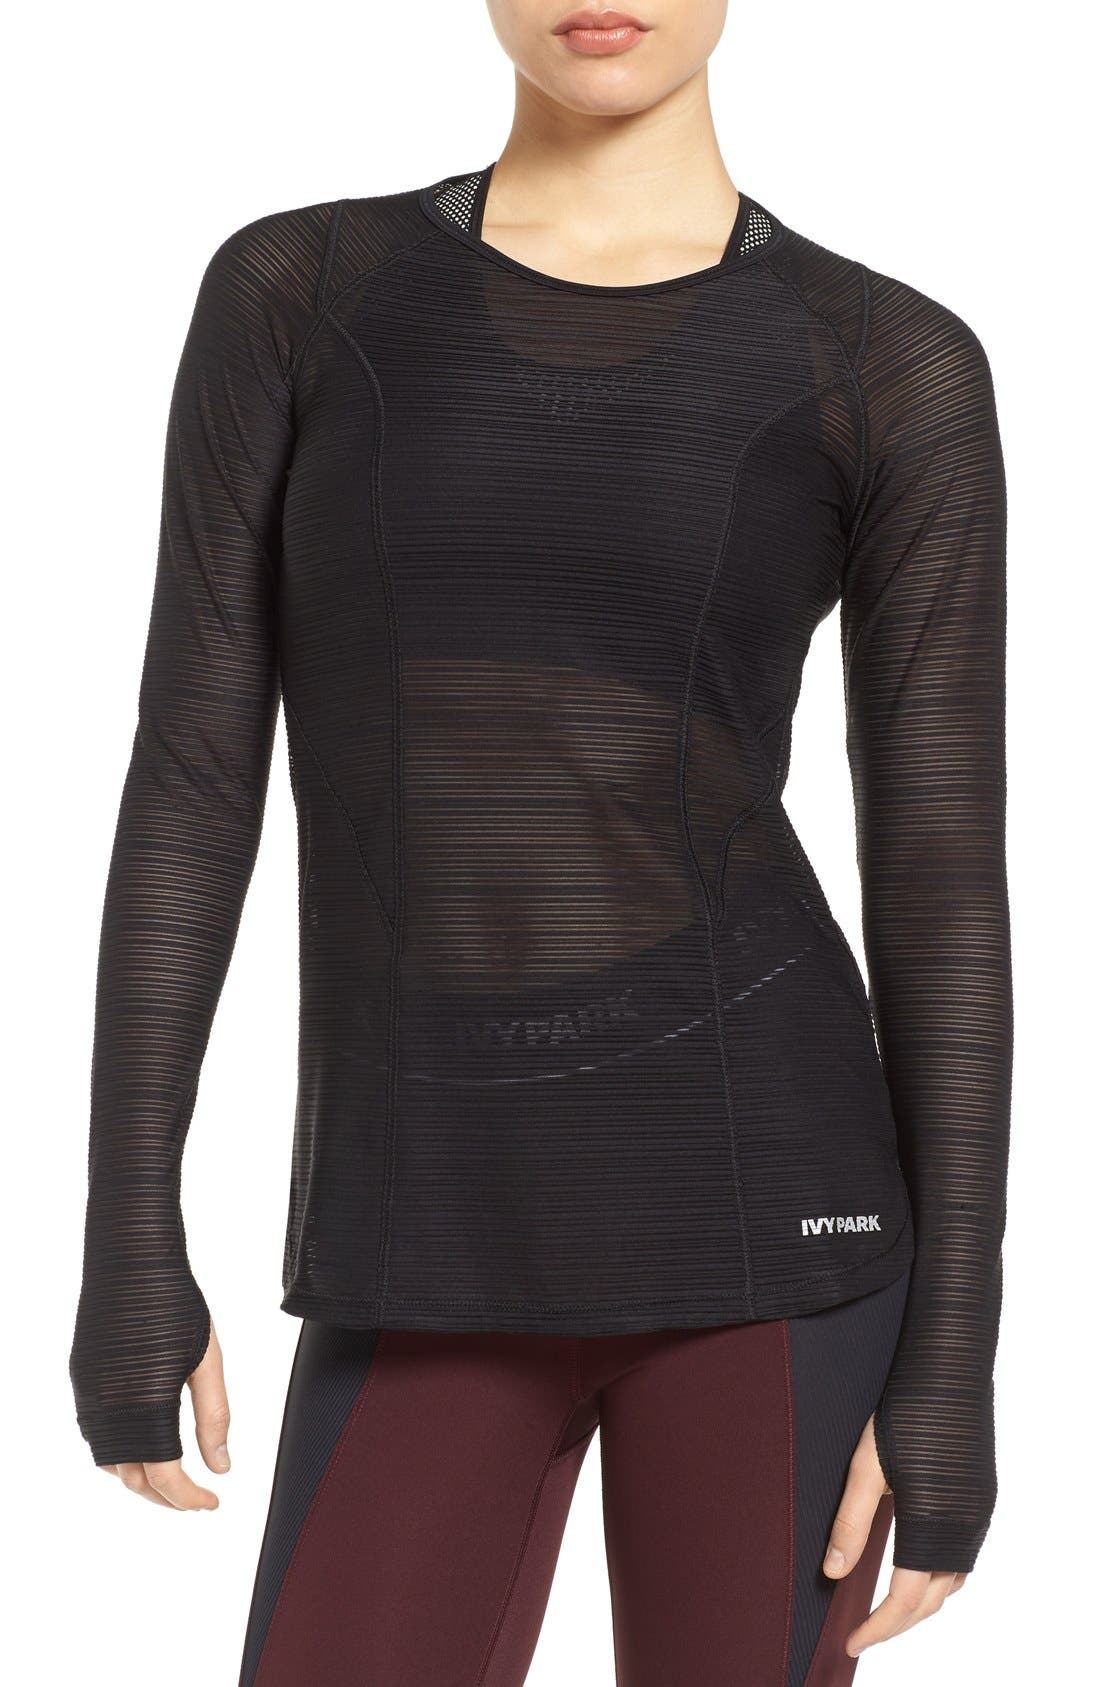 IVY PARK Linear Mesh Performance Top